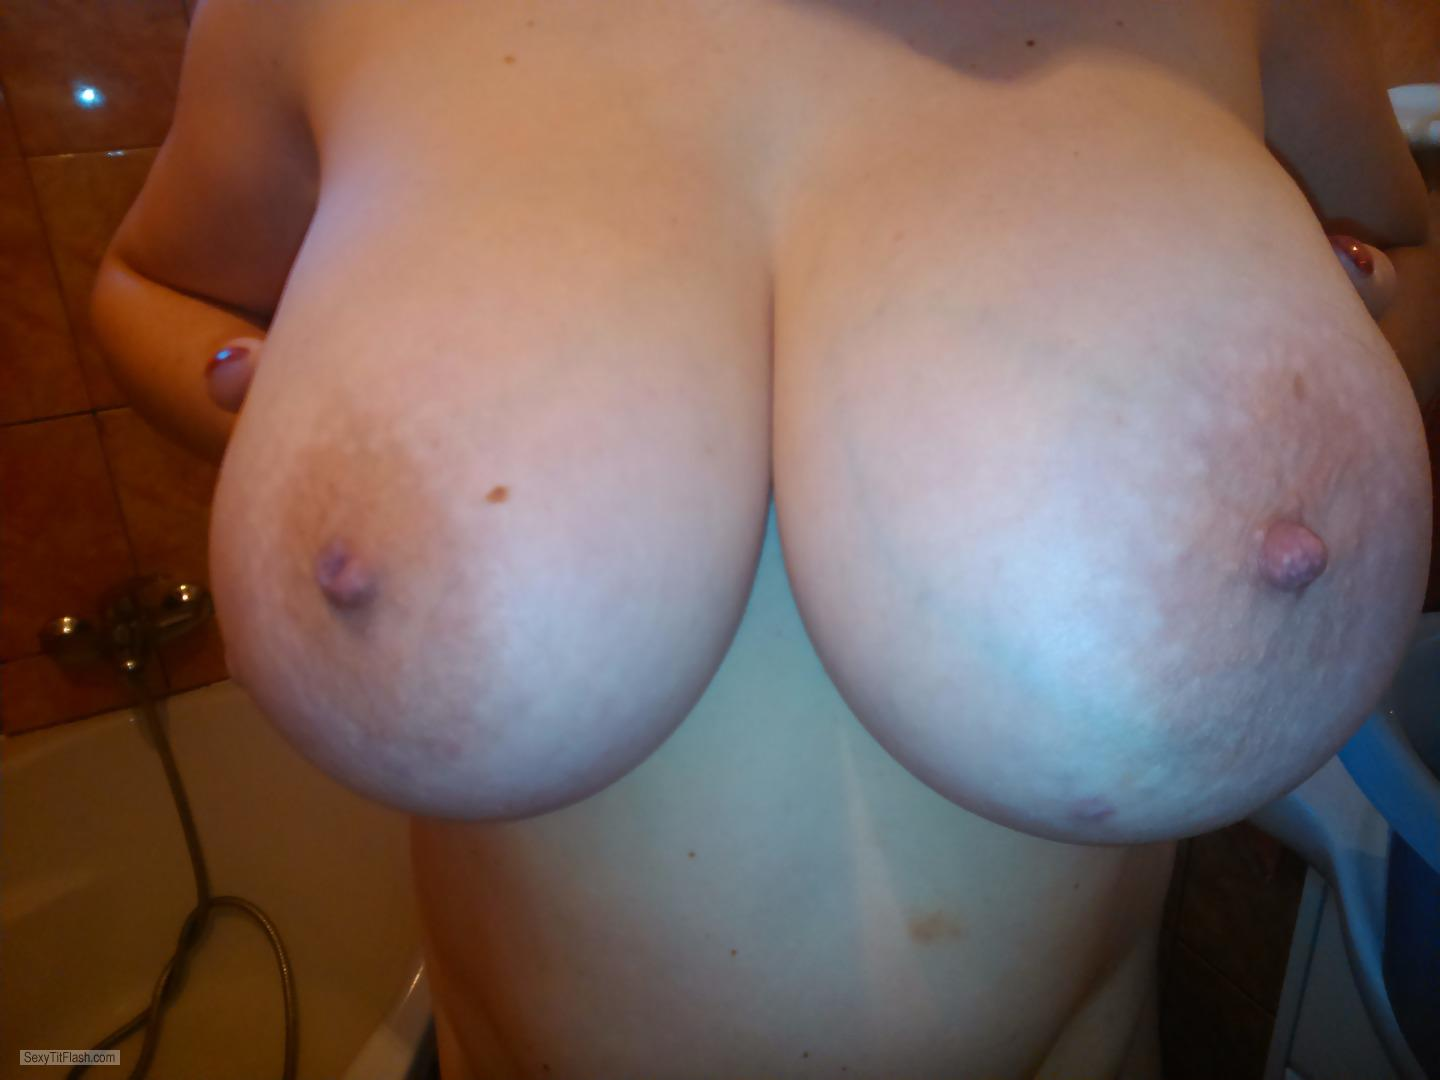 My Big Tits Selfie by Silvia